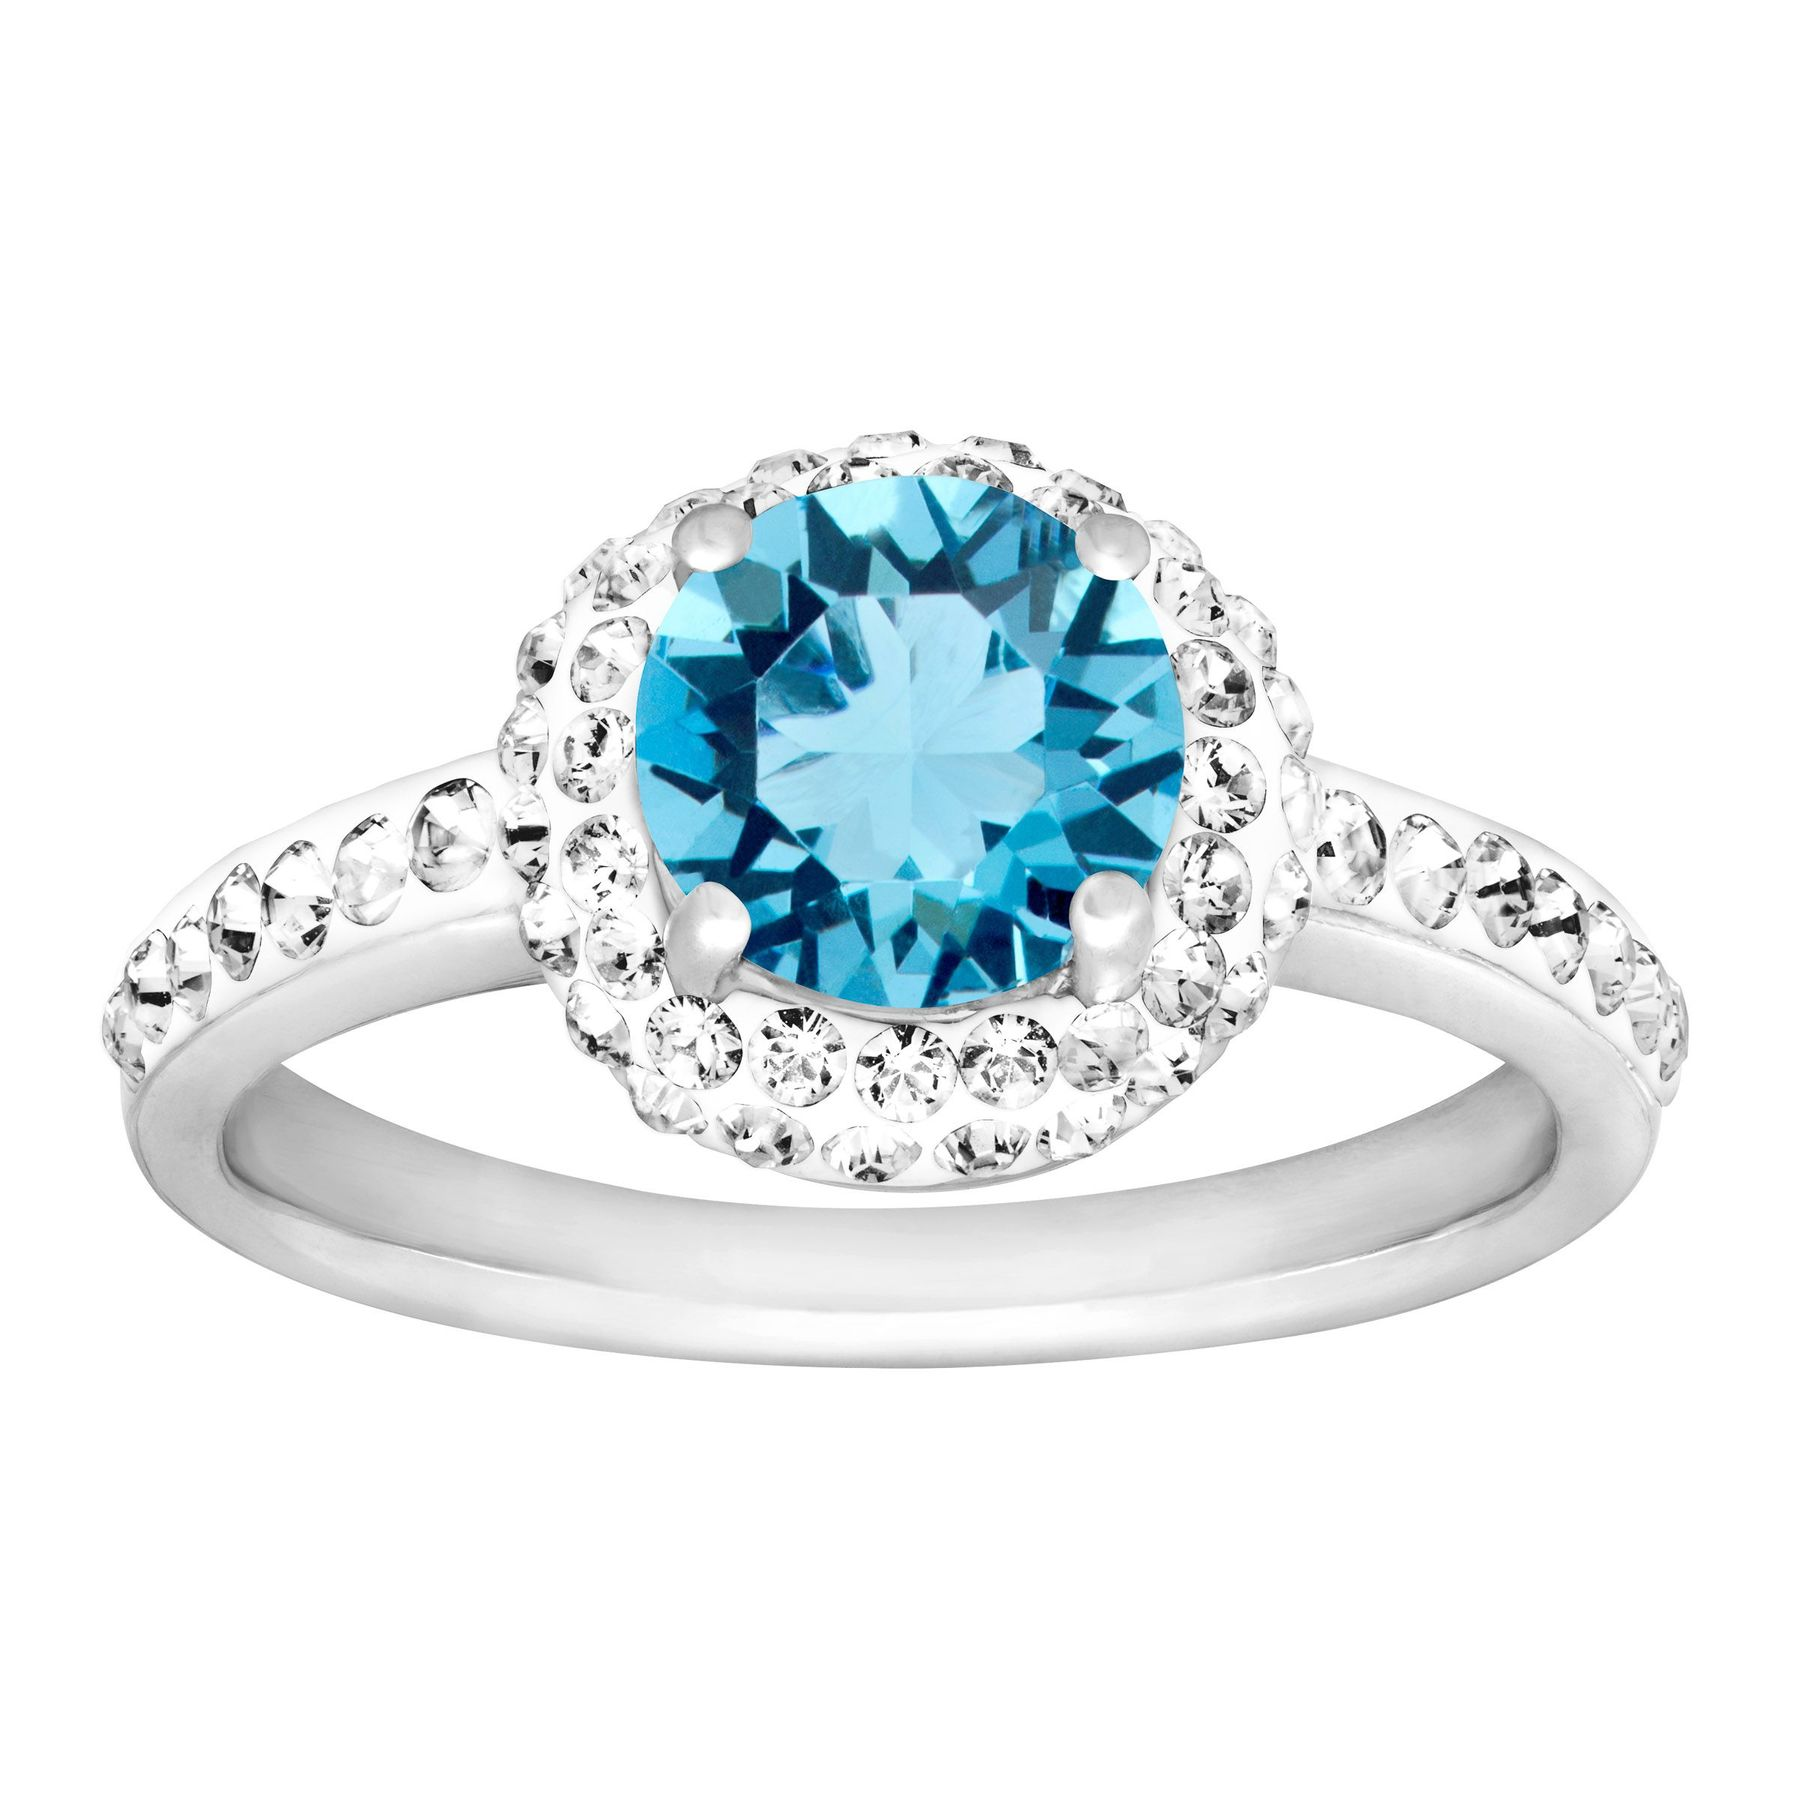 product march birthstone aquamarine engagement image australia hover rings jewellery